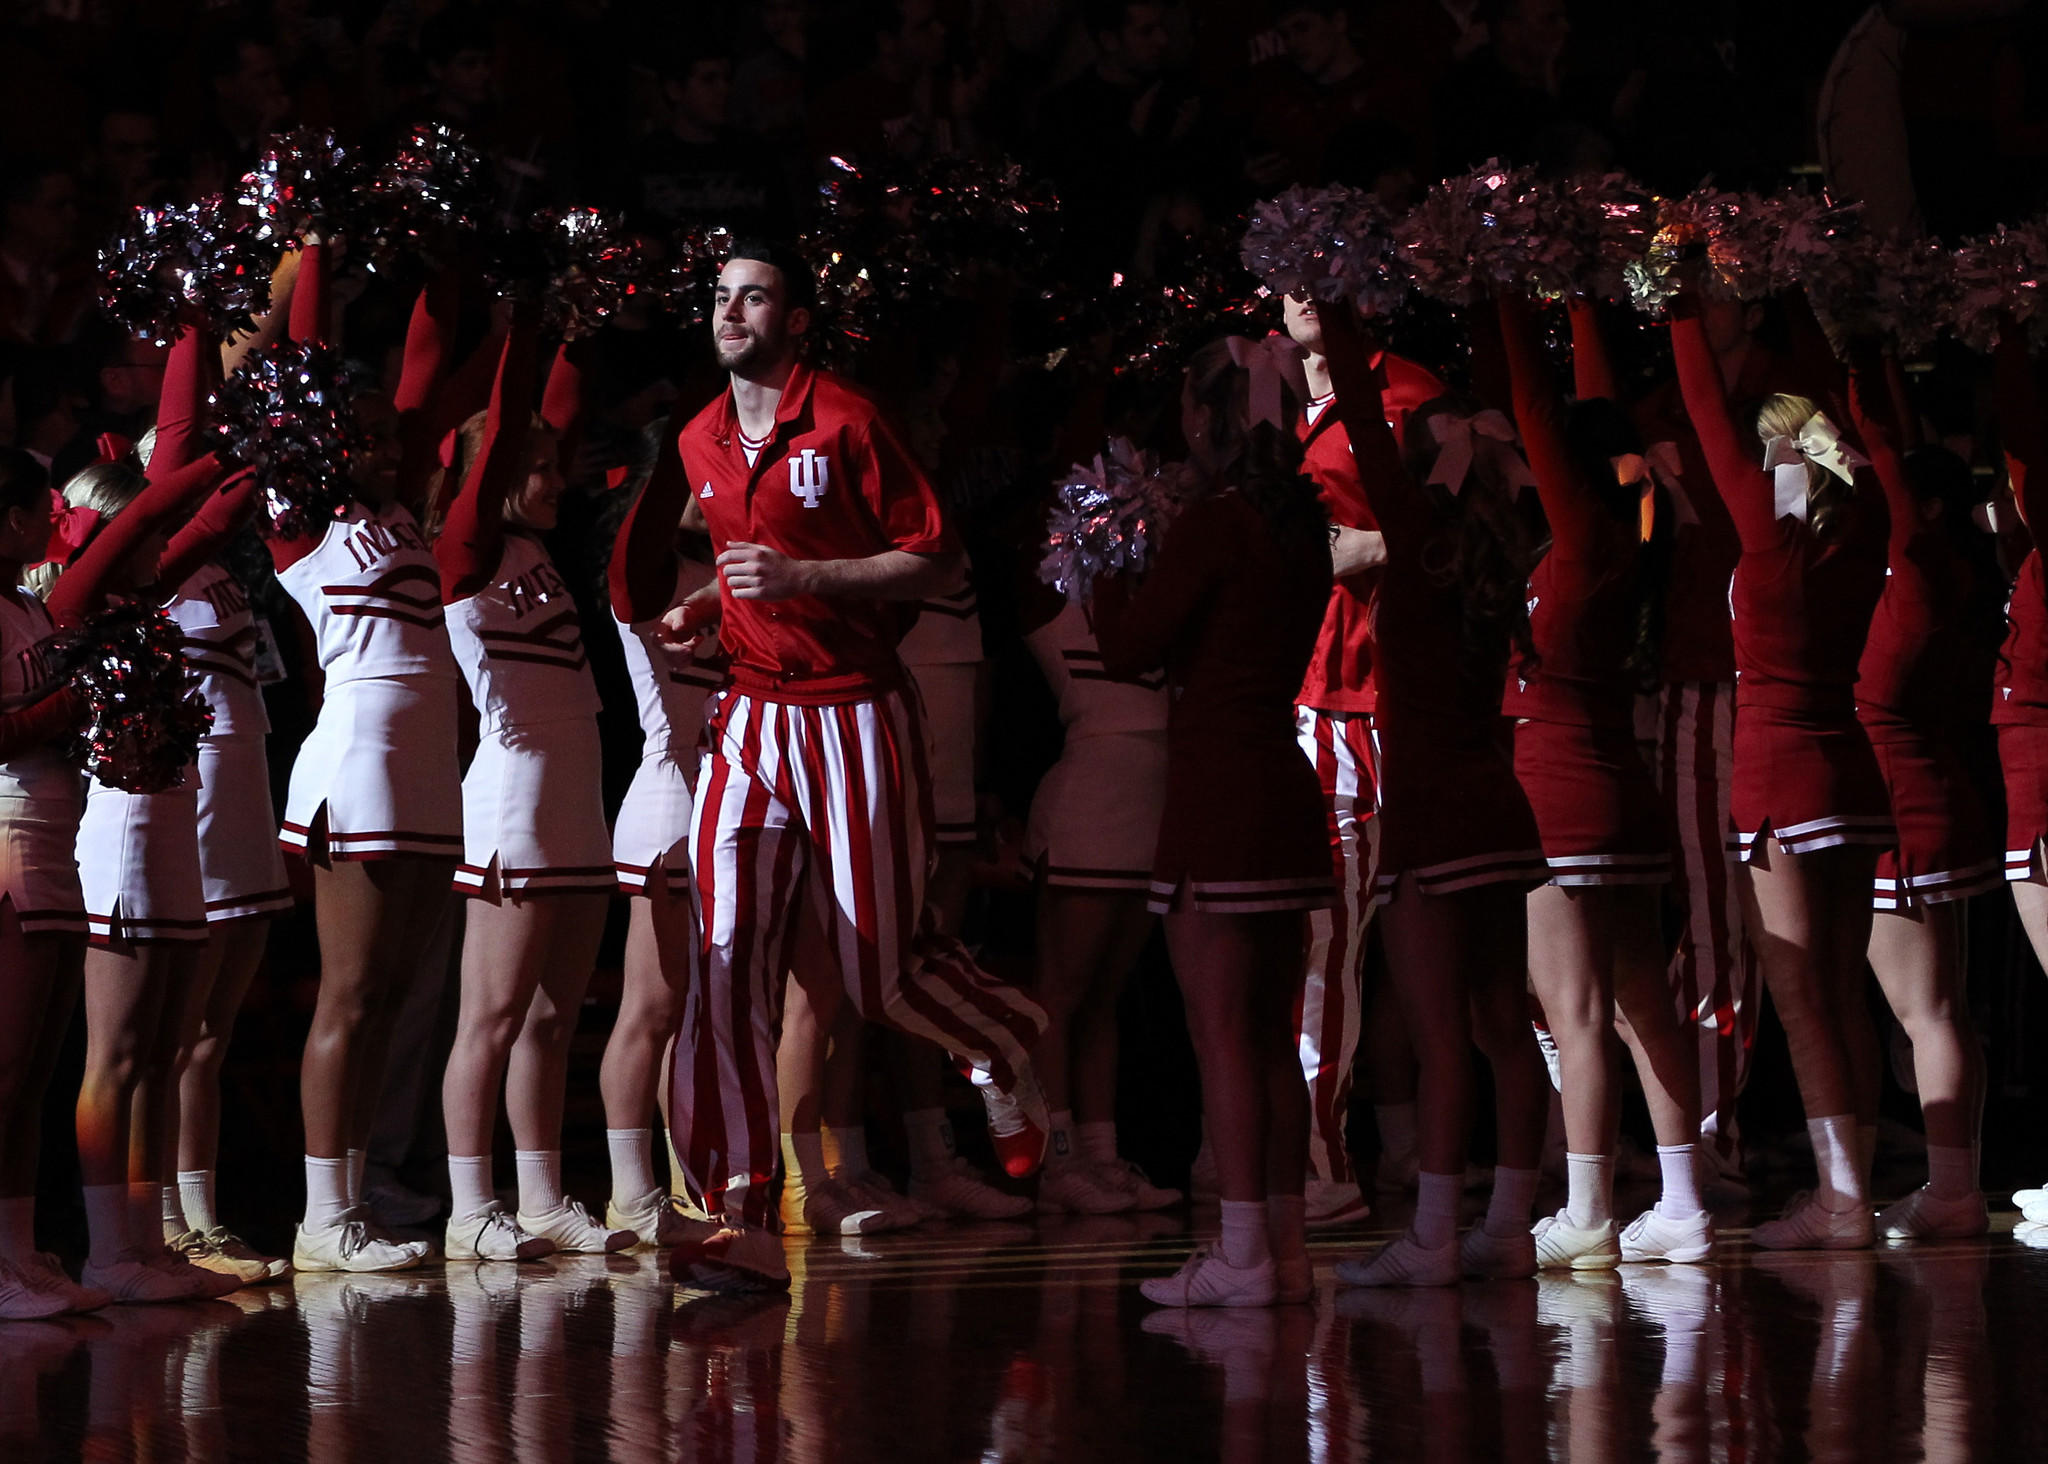 Indiana's Will Sheehey leads the team on to the court before a game earlier this month.